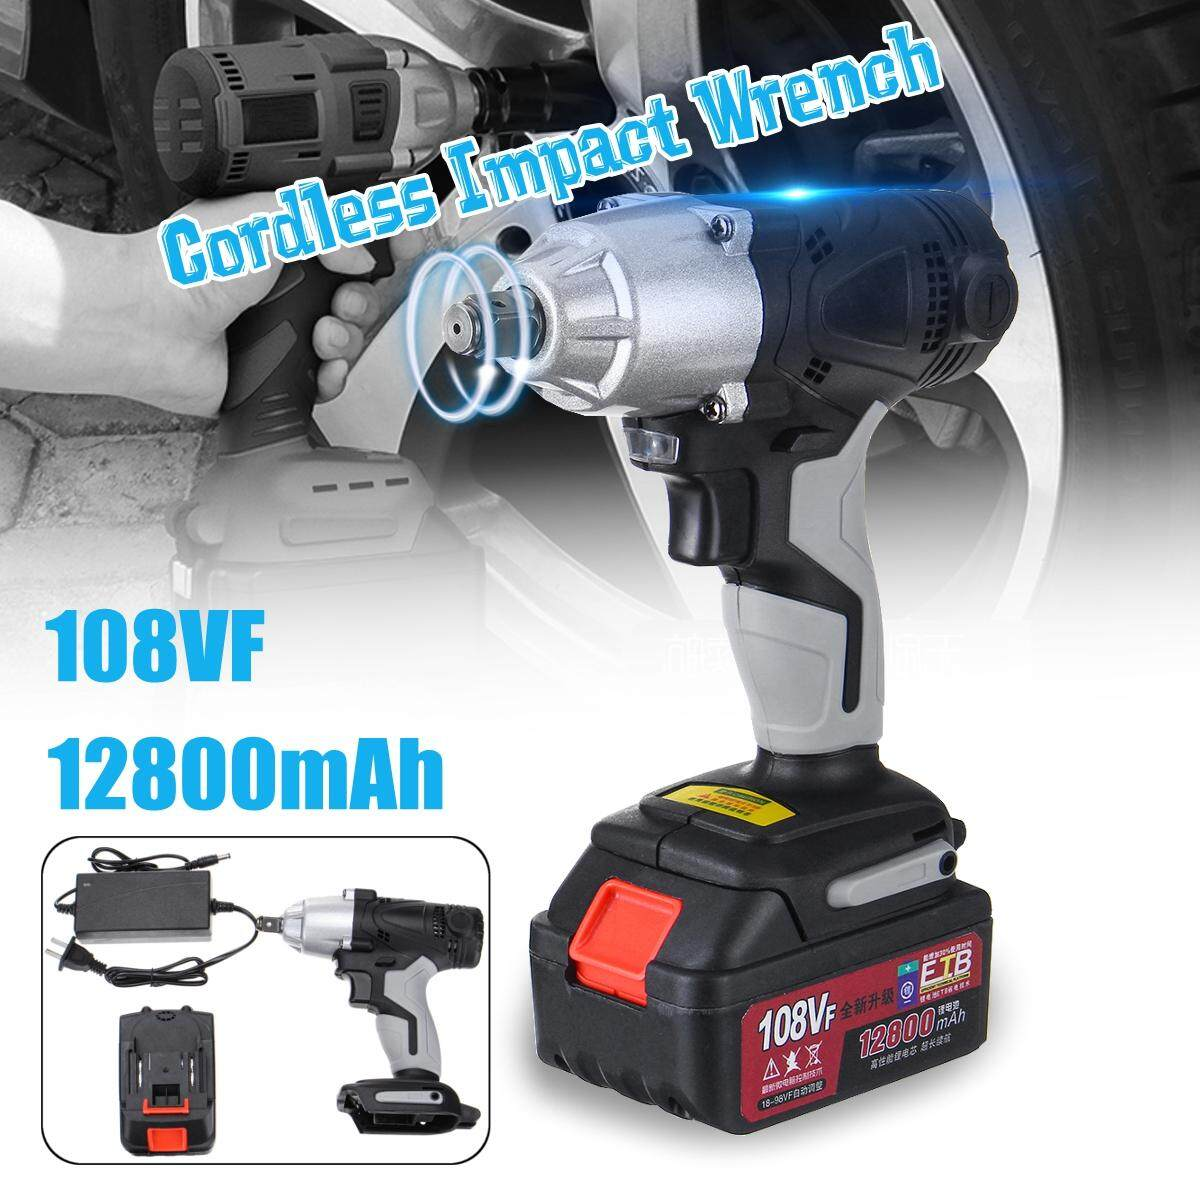 [12.12] 12800mAh 108VF 320N.m LED Lighting Rechargeable Brushless Cordless Electric Impact Wrench